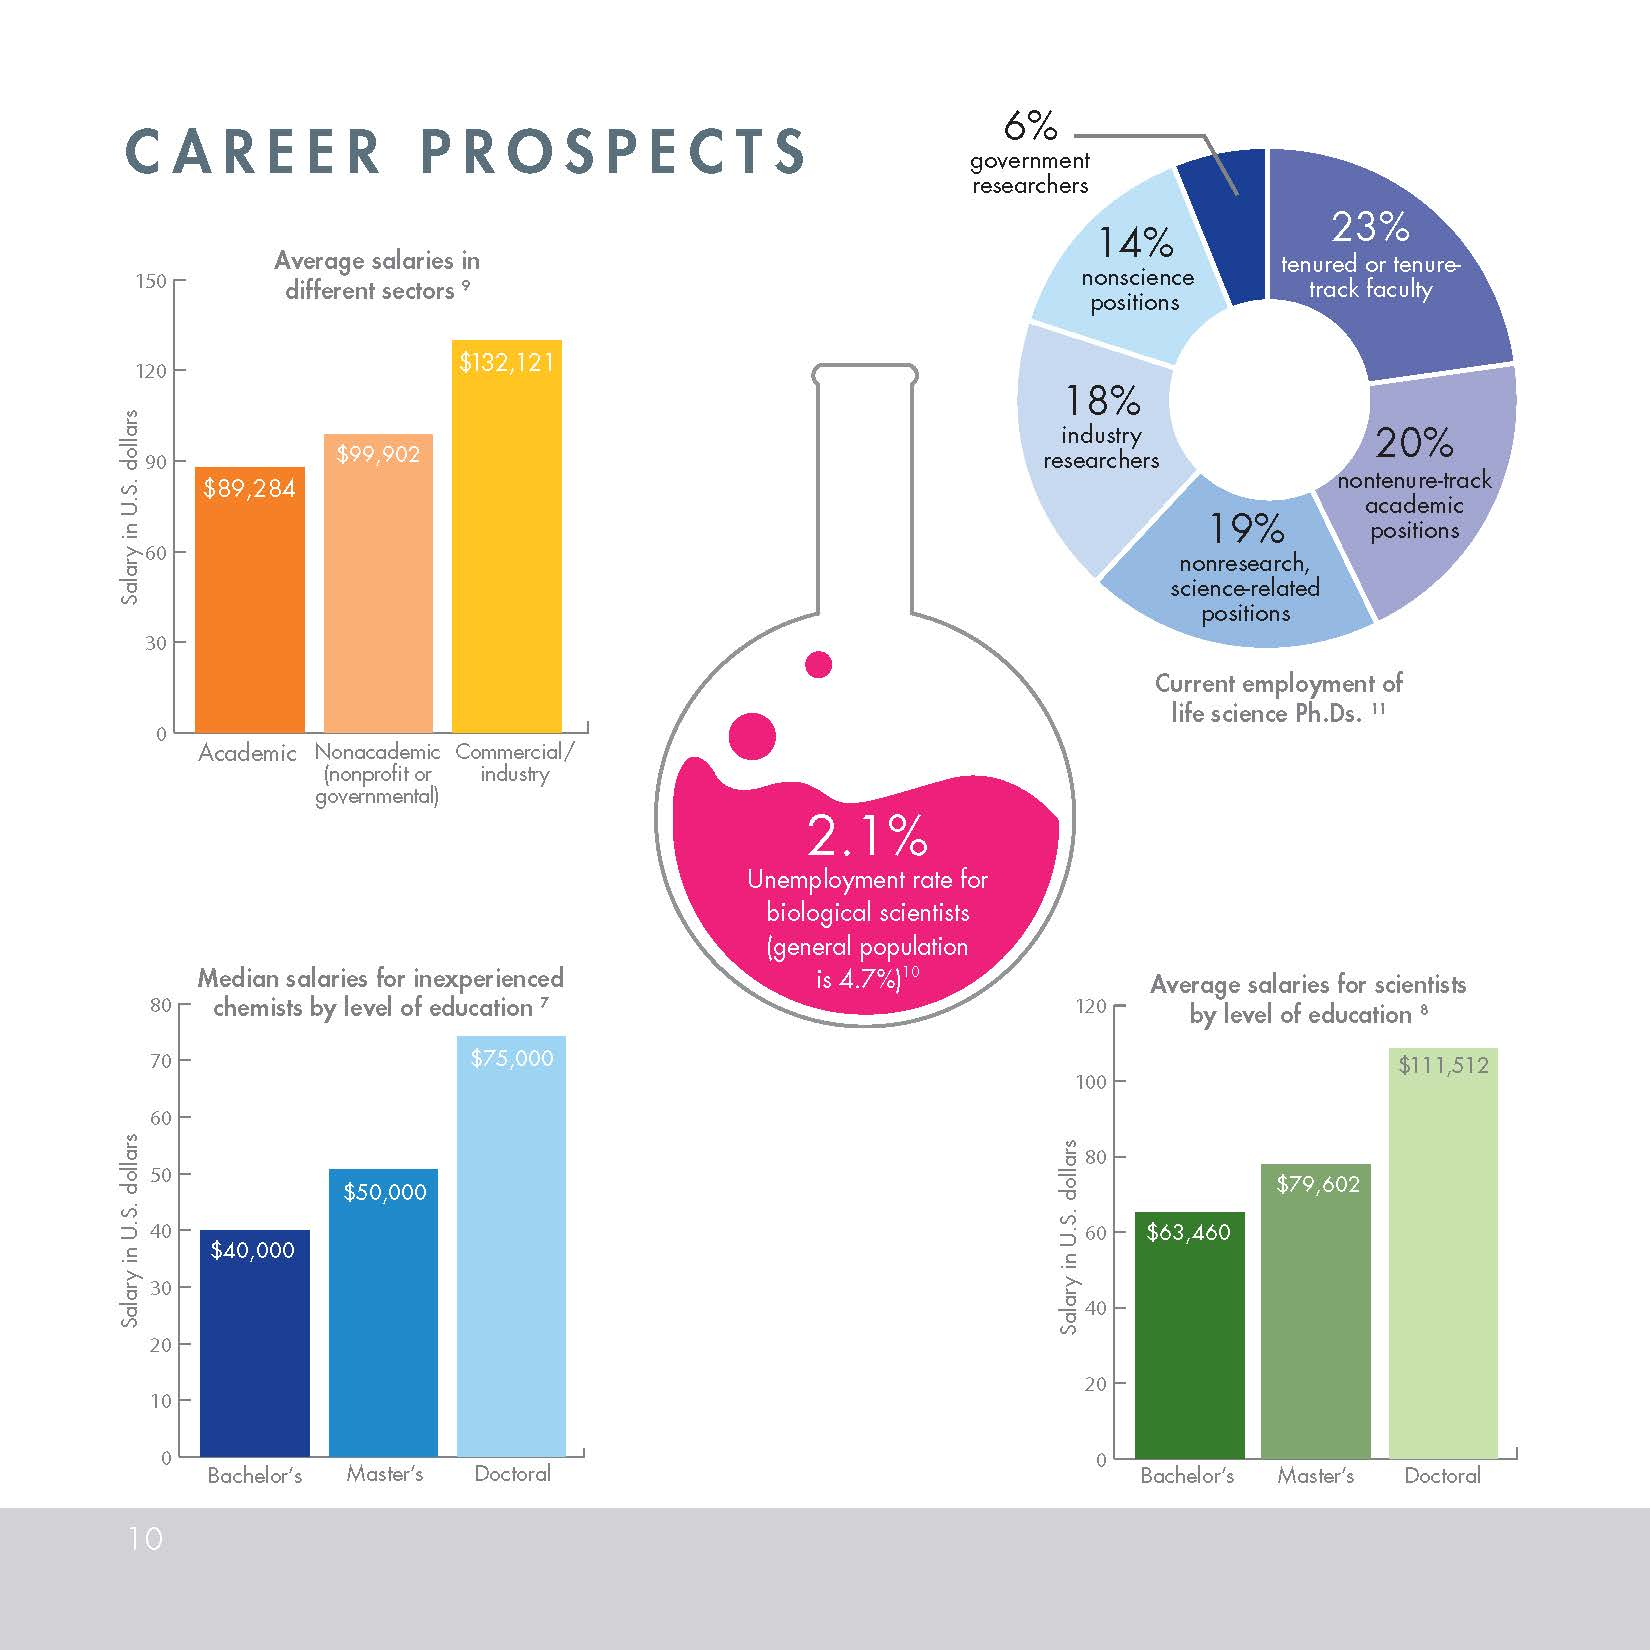 Image of Career Prospects / Salaries for BCMB majors